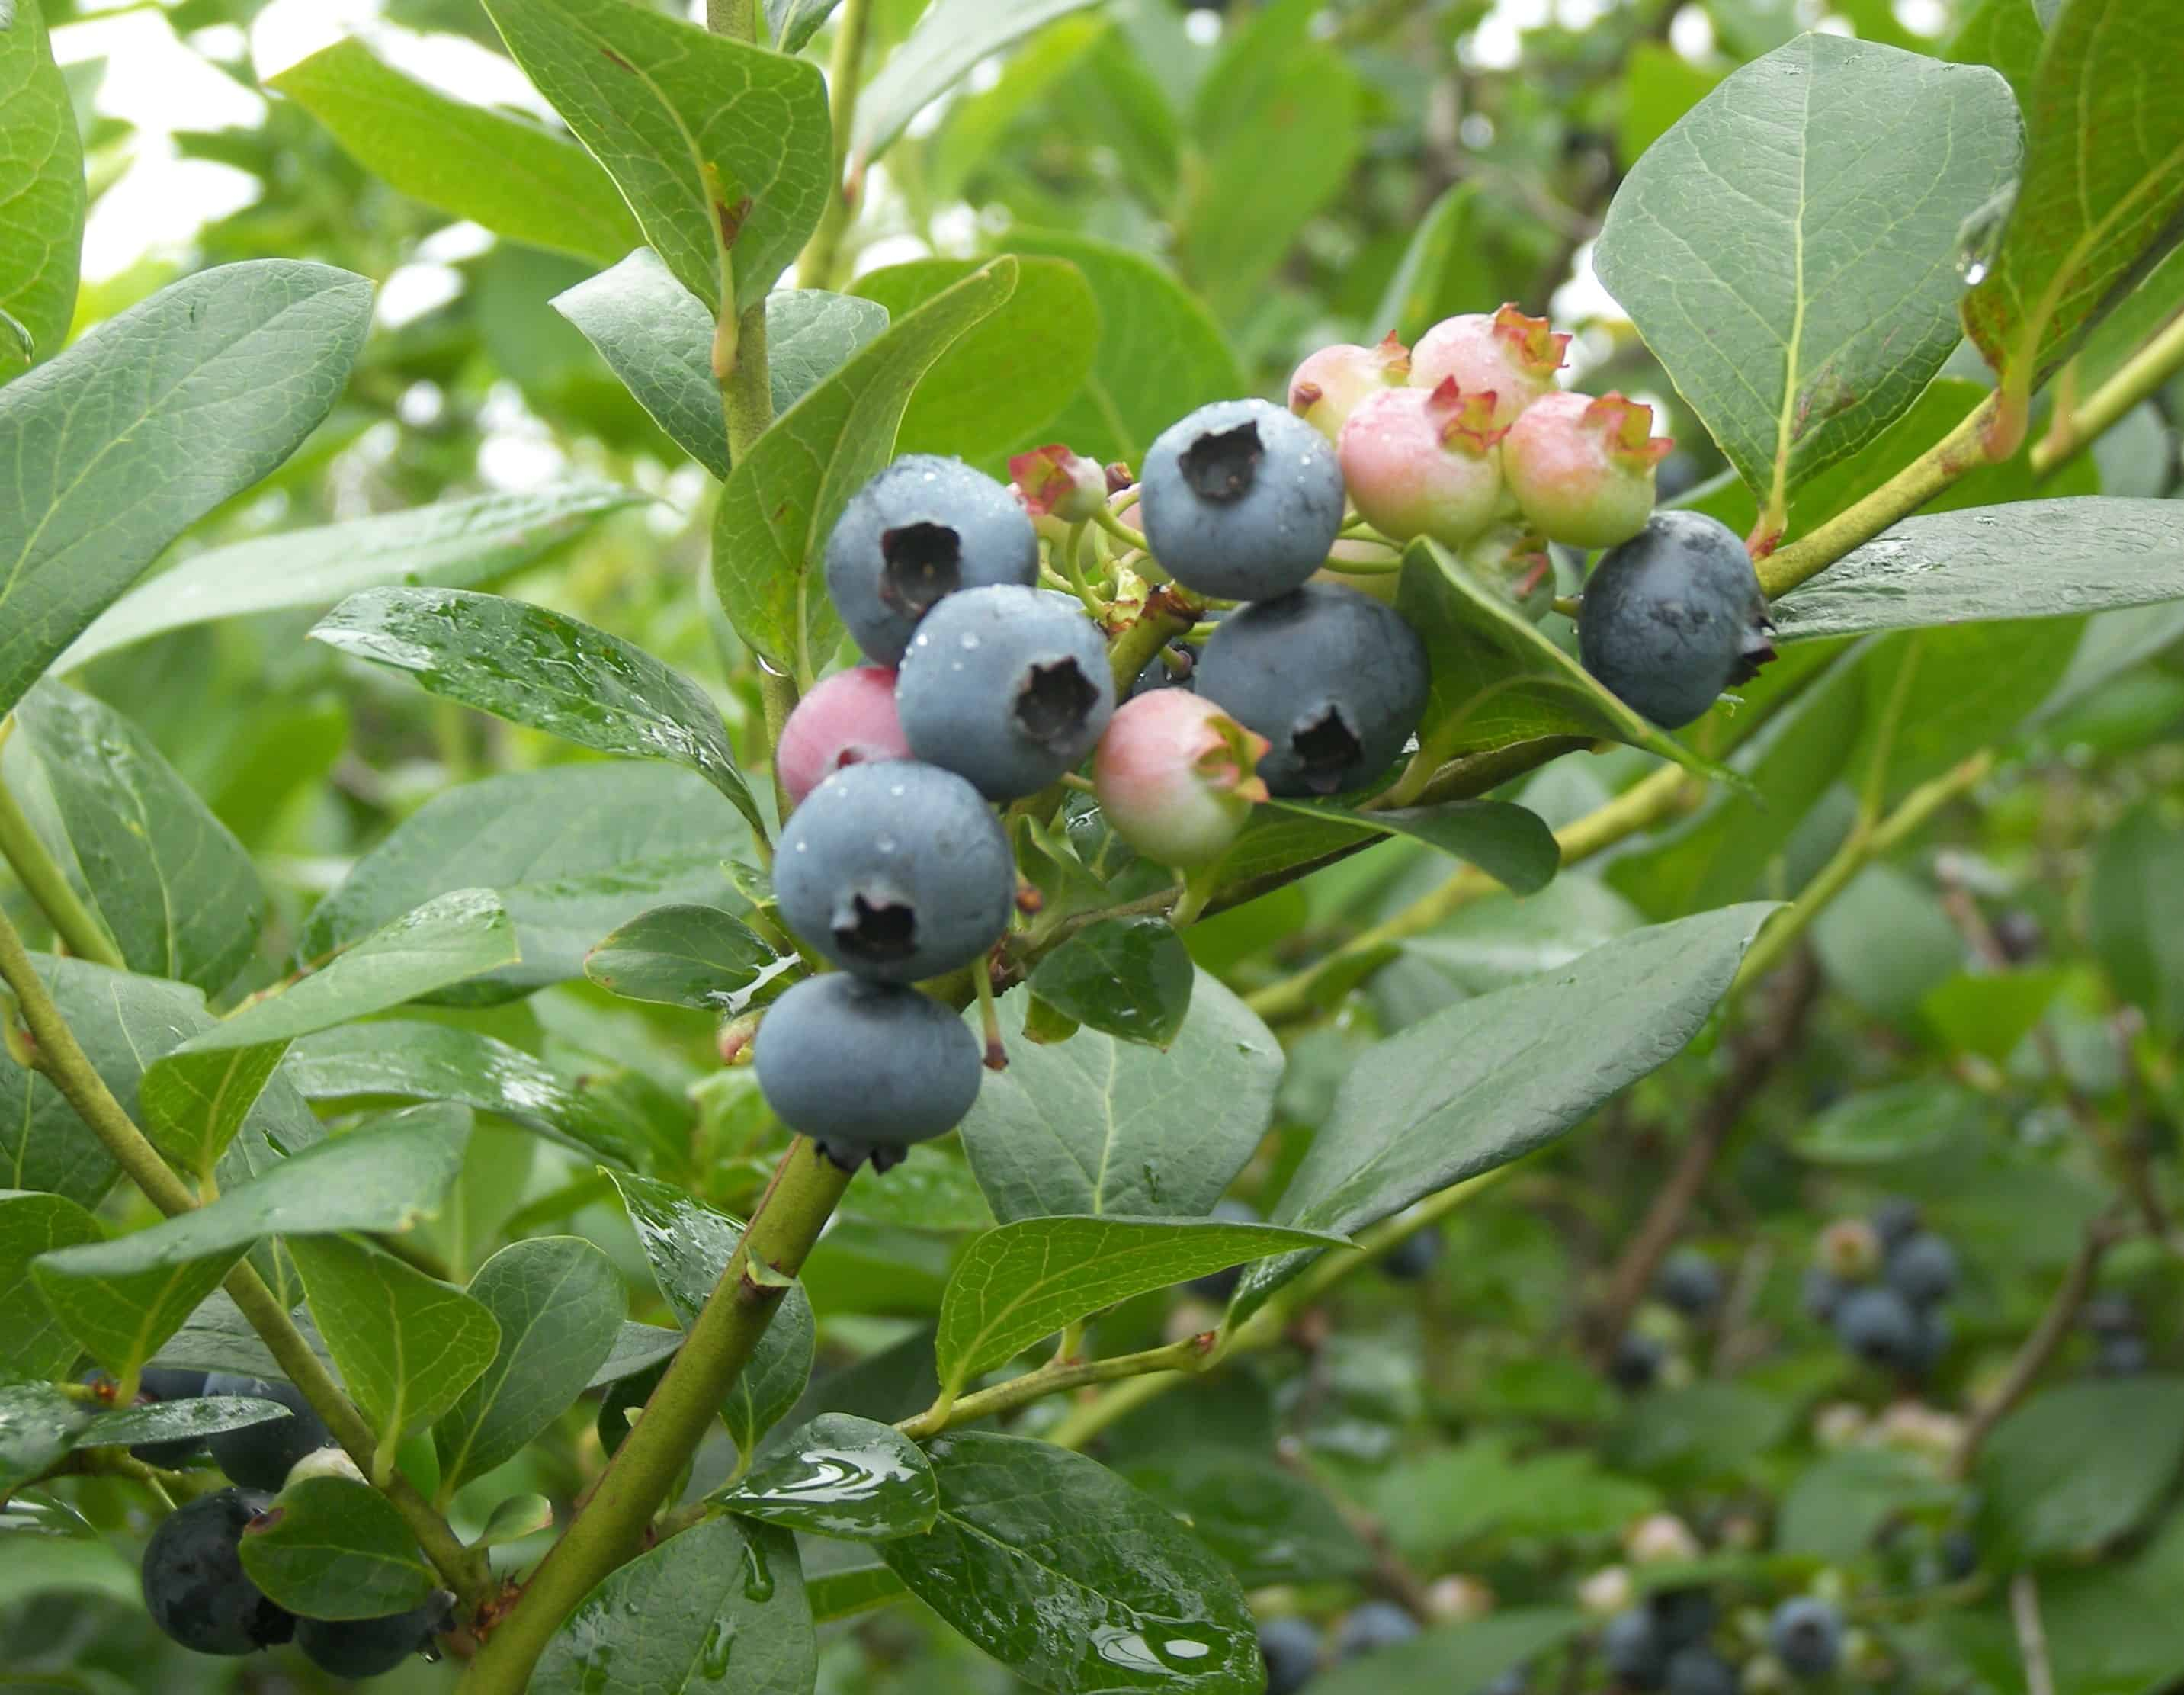 When Are Blueberries In Season? (Begin and End) - Eat Like ...